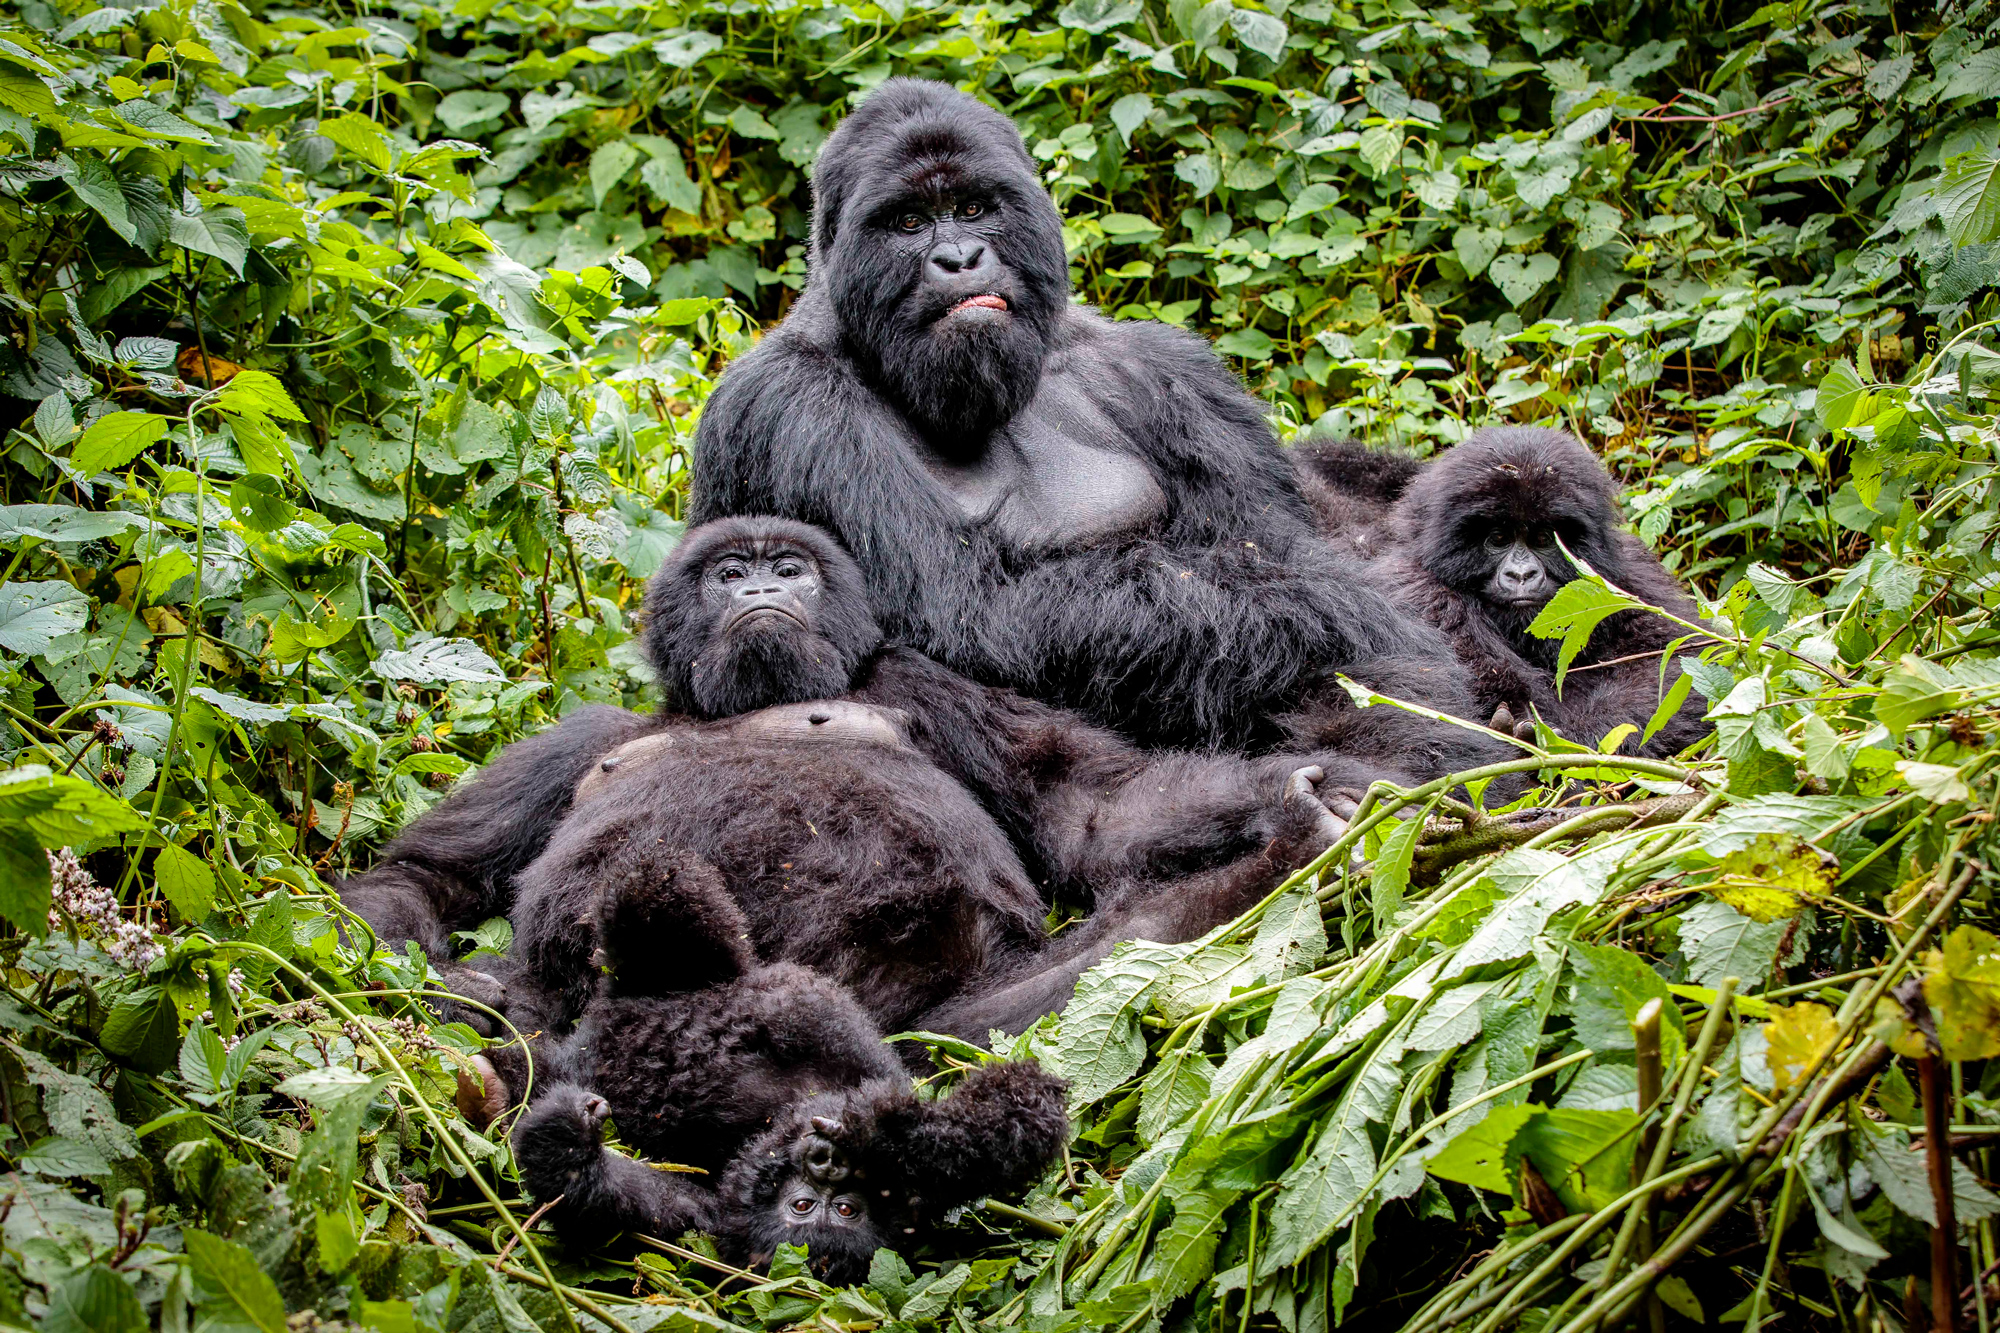 A family portrait of the Rugendo mountain gorilla family in Virunga National Park in the DR Congo